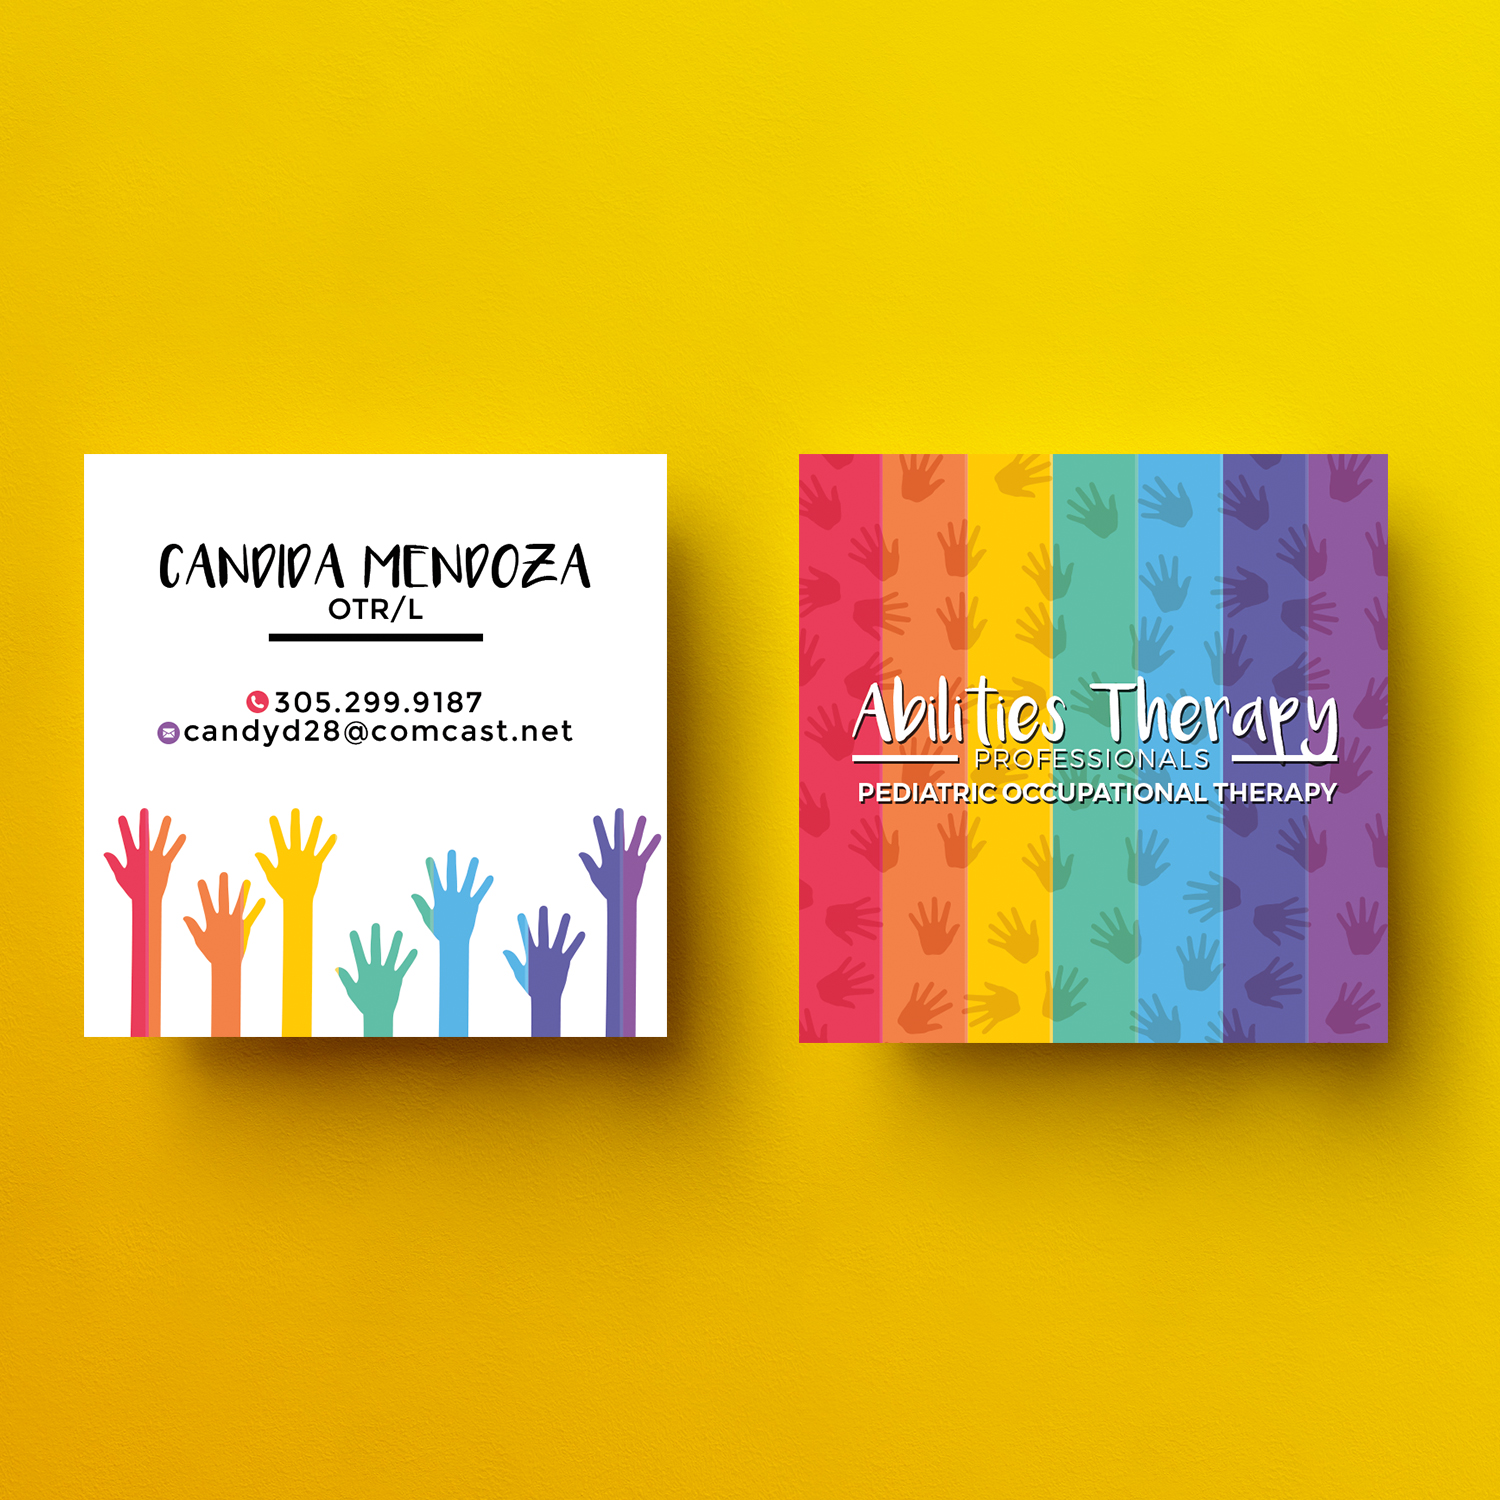 Modern Professional Business Card Design For Abilities Therapy